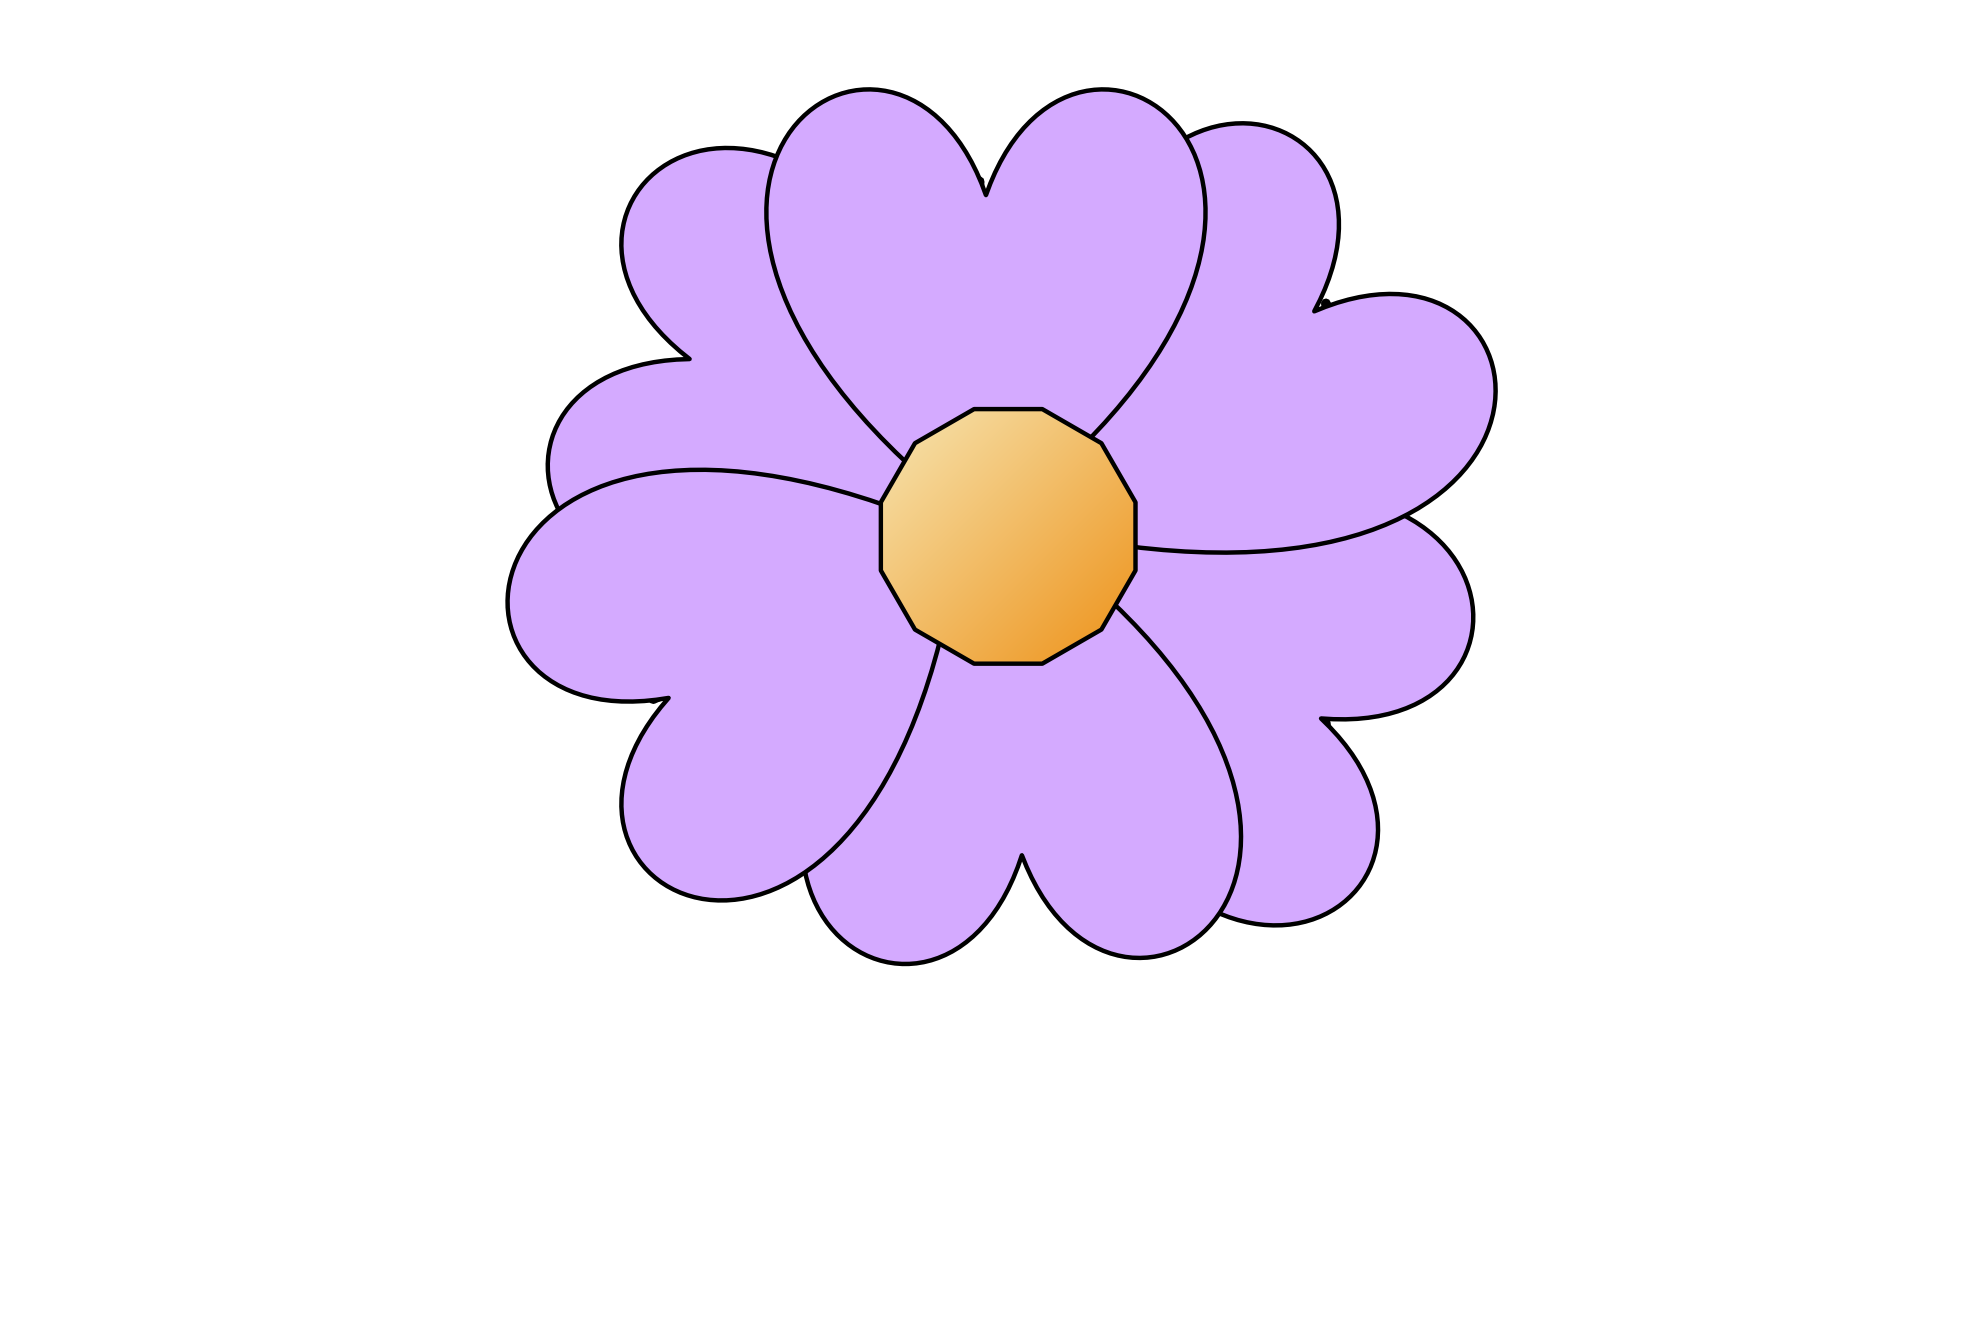 Flower Simple Purple Png 12 K  Flower Simple Purple 555px Png 22 K